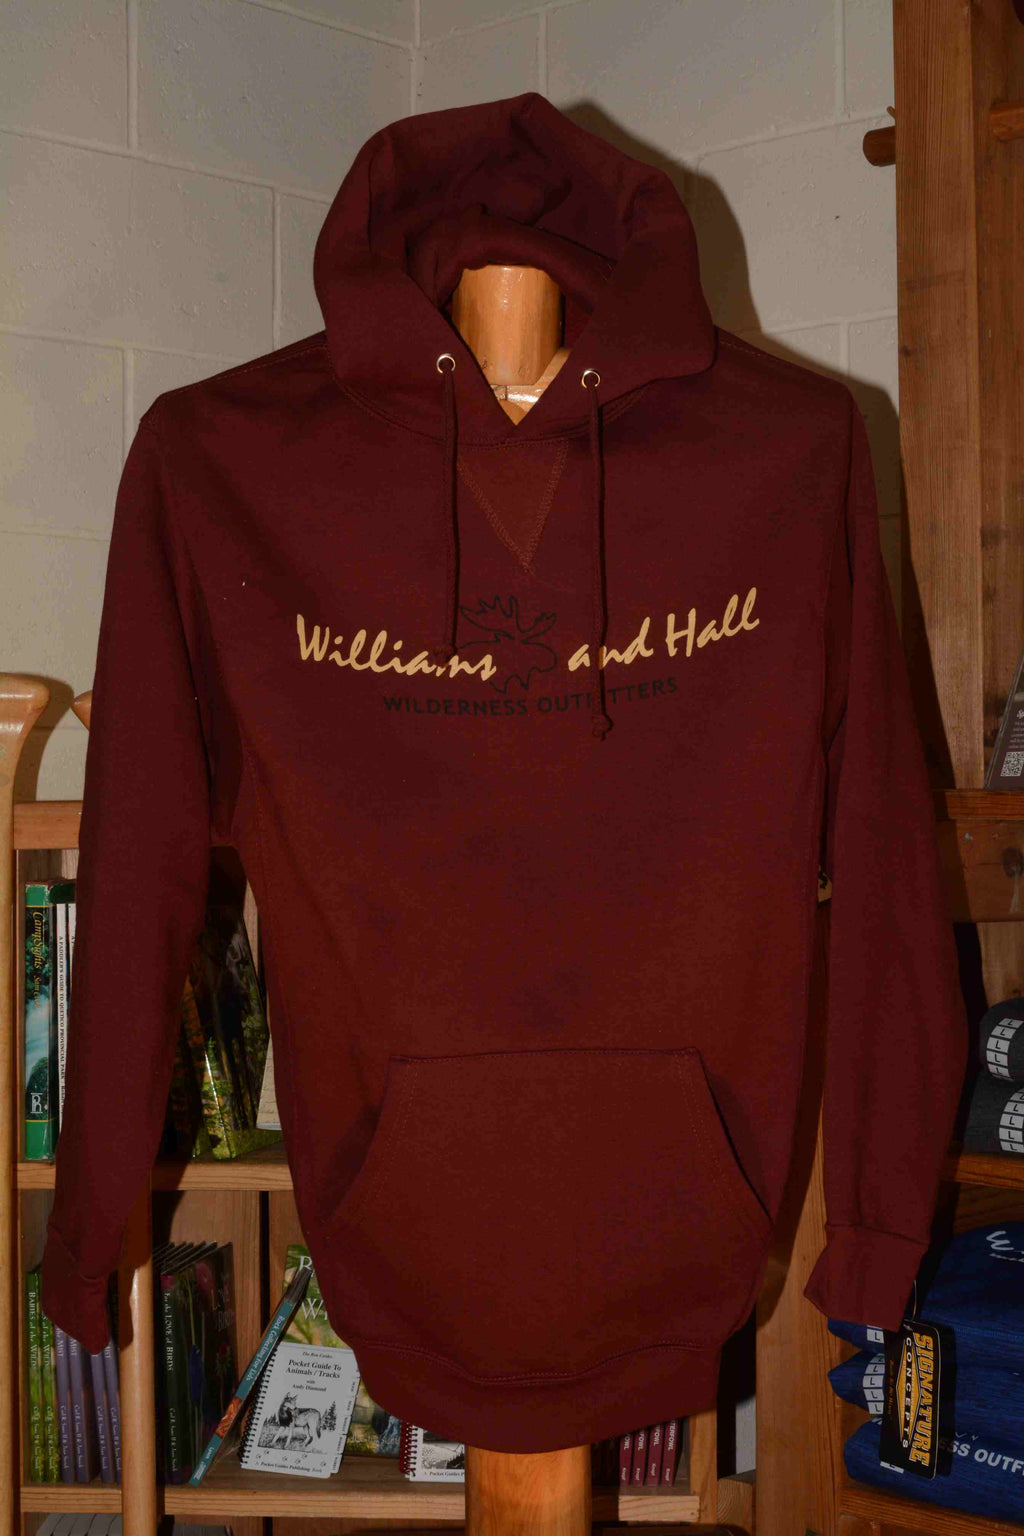 Sweatshirt featuring Williams and Hall Outfitters logo